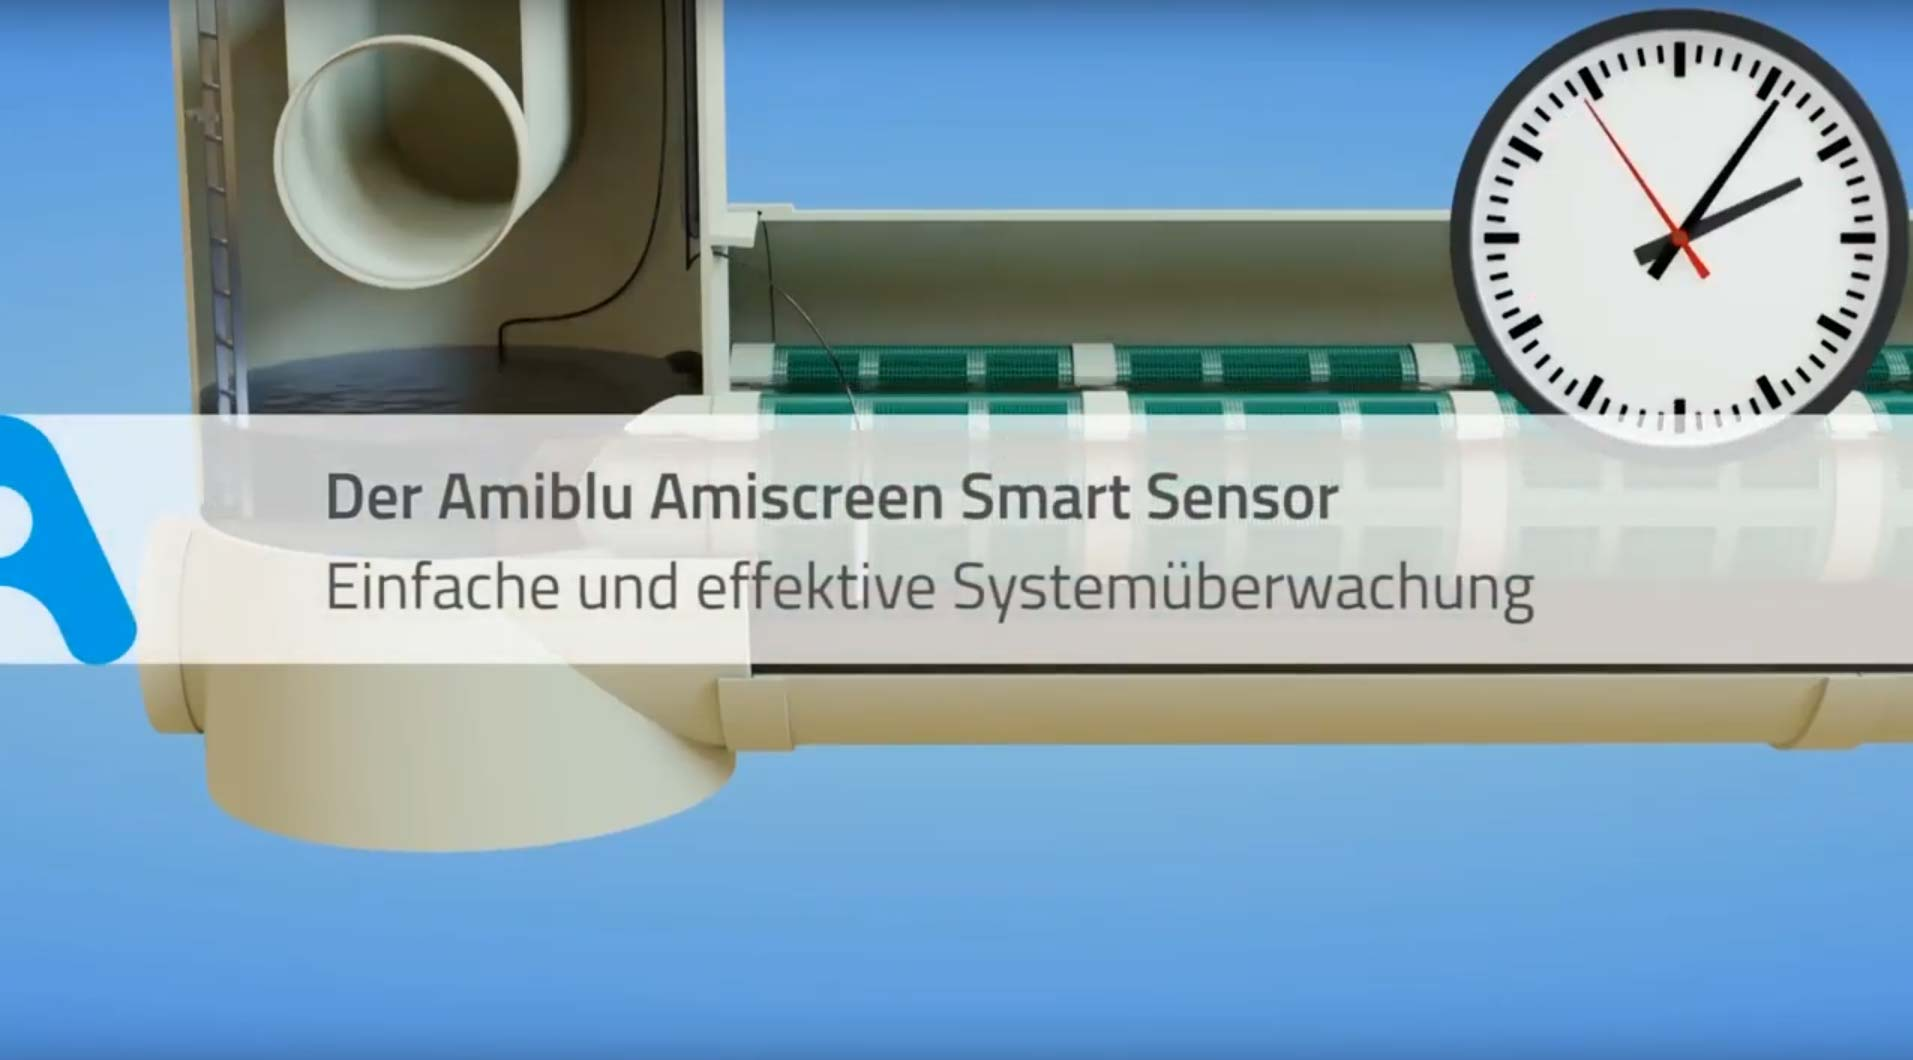 Amiblu Amiscreen Smart Sensor Systemüberwachung Video